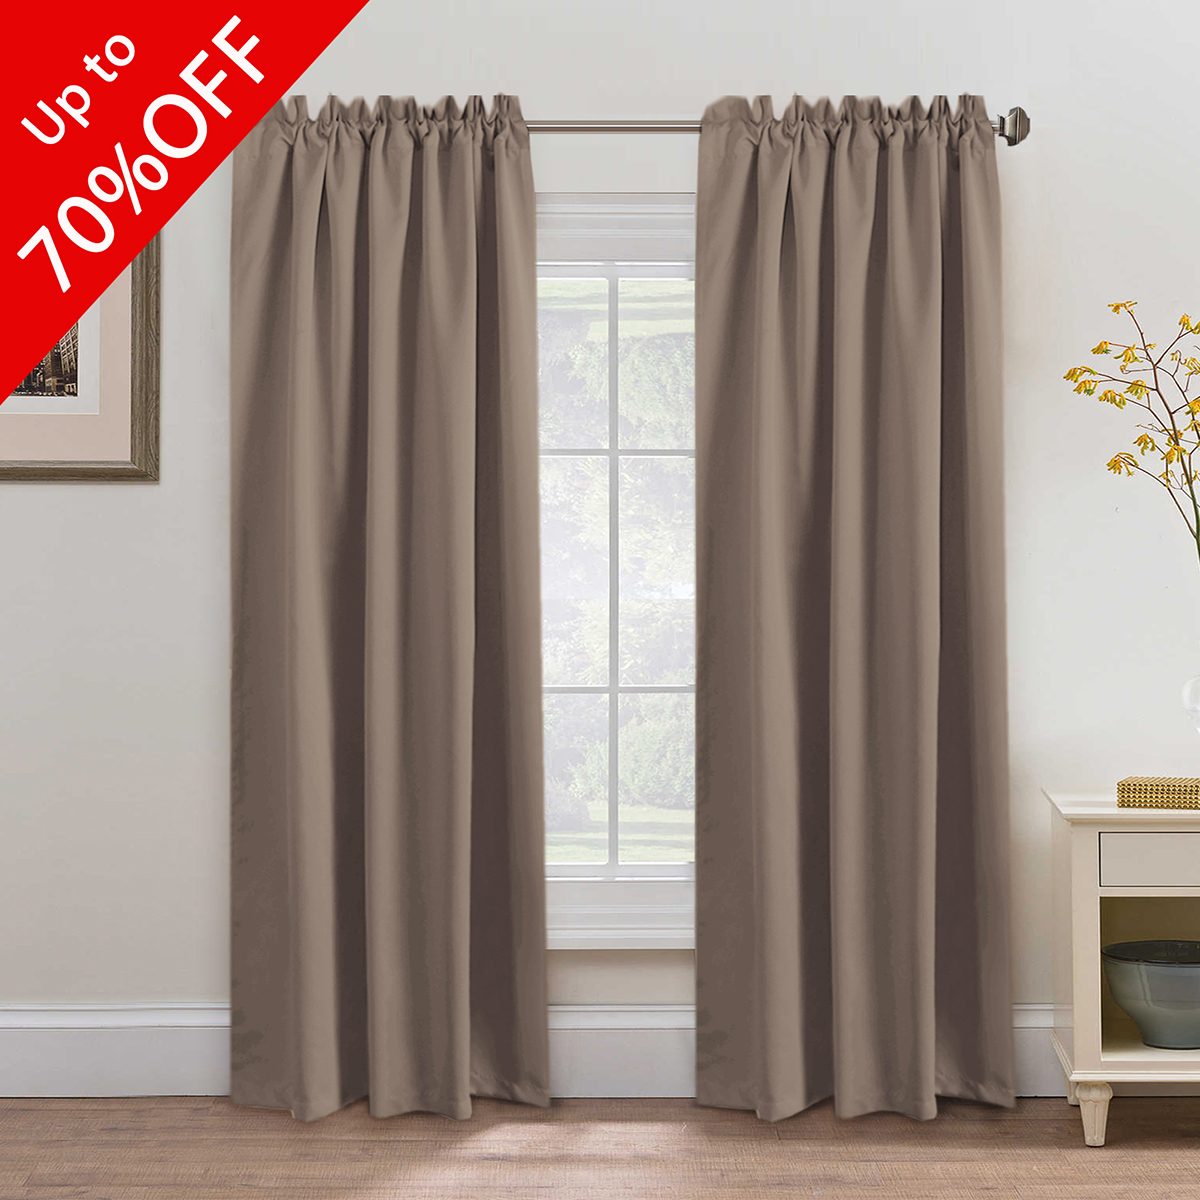 Thermal Insulated Curtains D